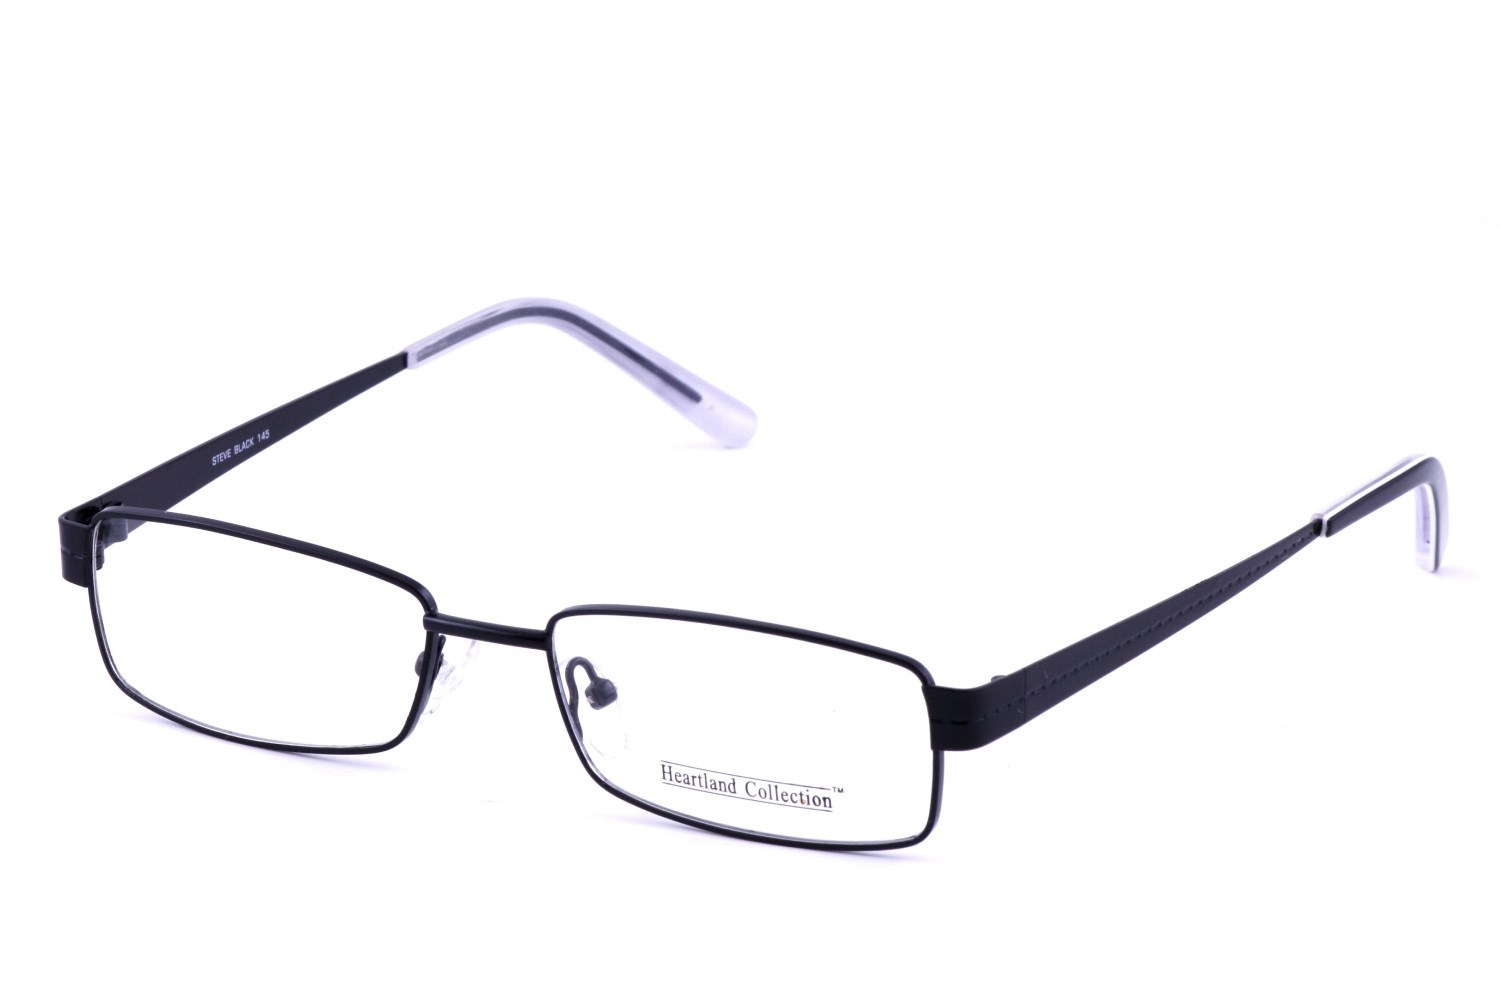 Heartland Steve Prescription Eyeglasses Frames